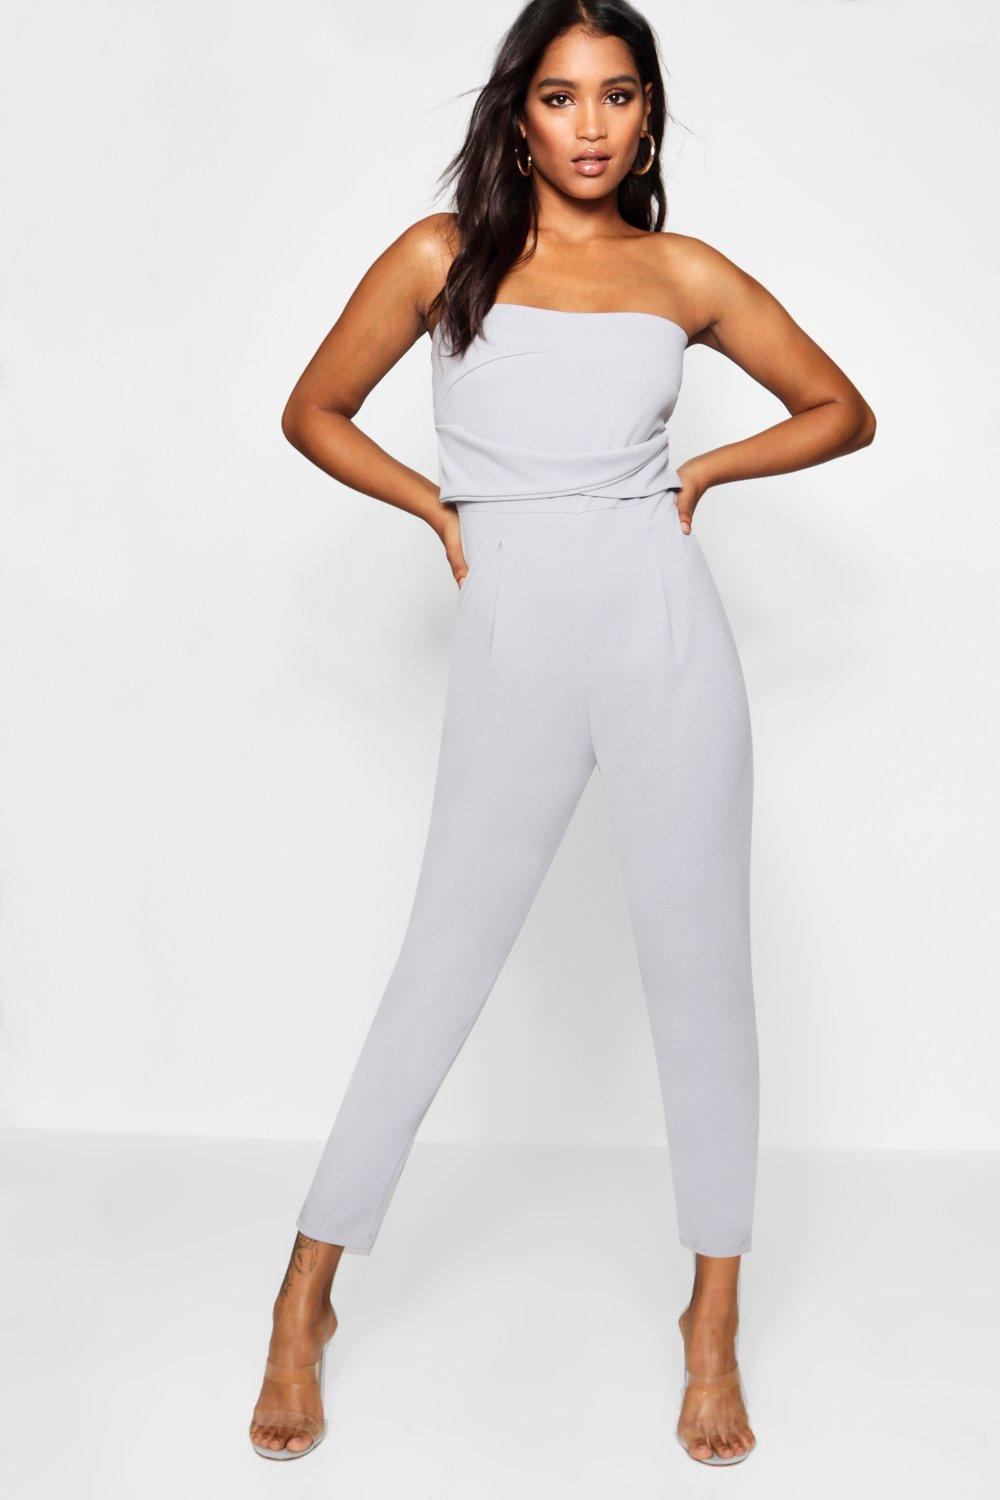 7a62408602e9 Bandeau Tailored Woven Slim Fit Jumpsuit. Hover to zoom